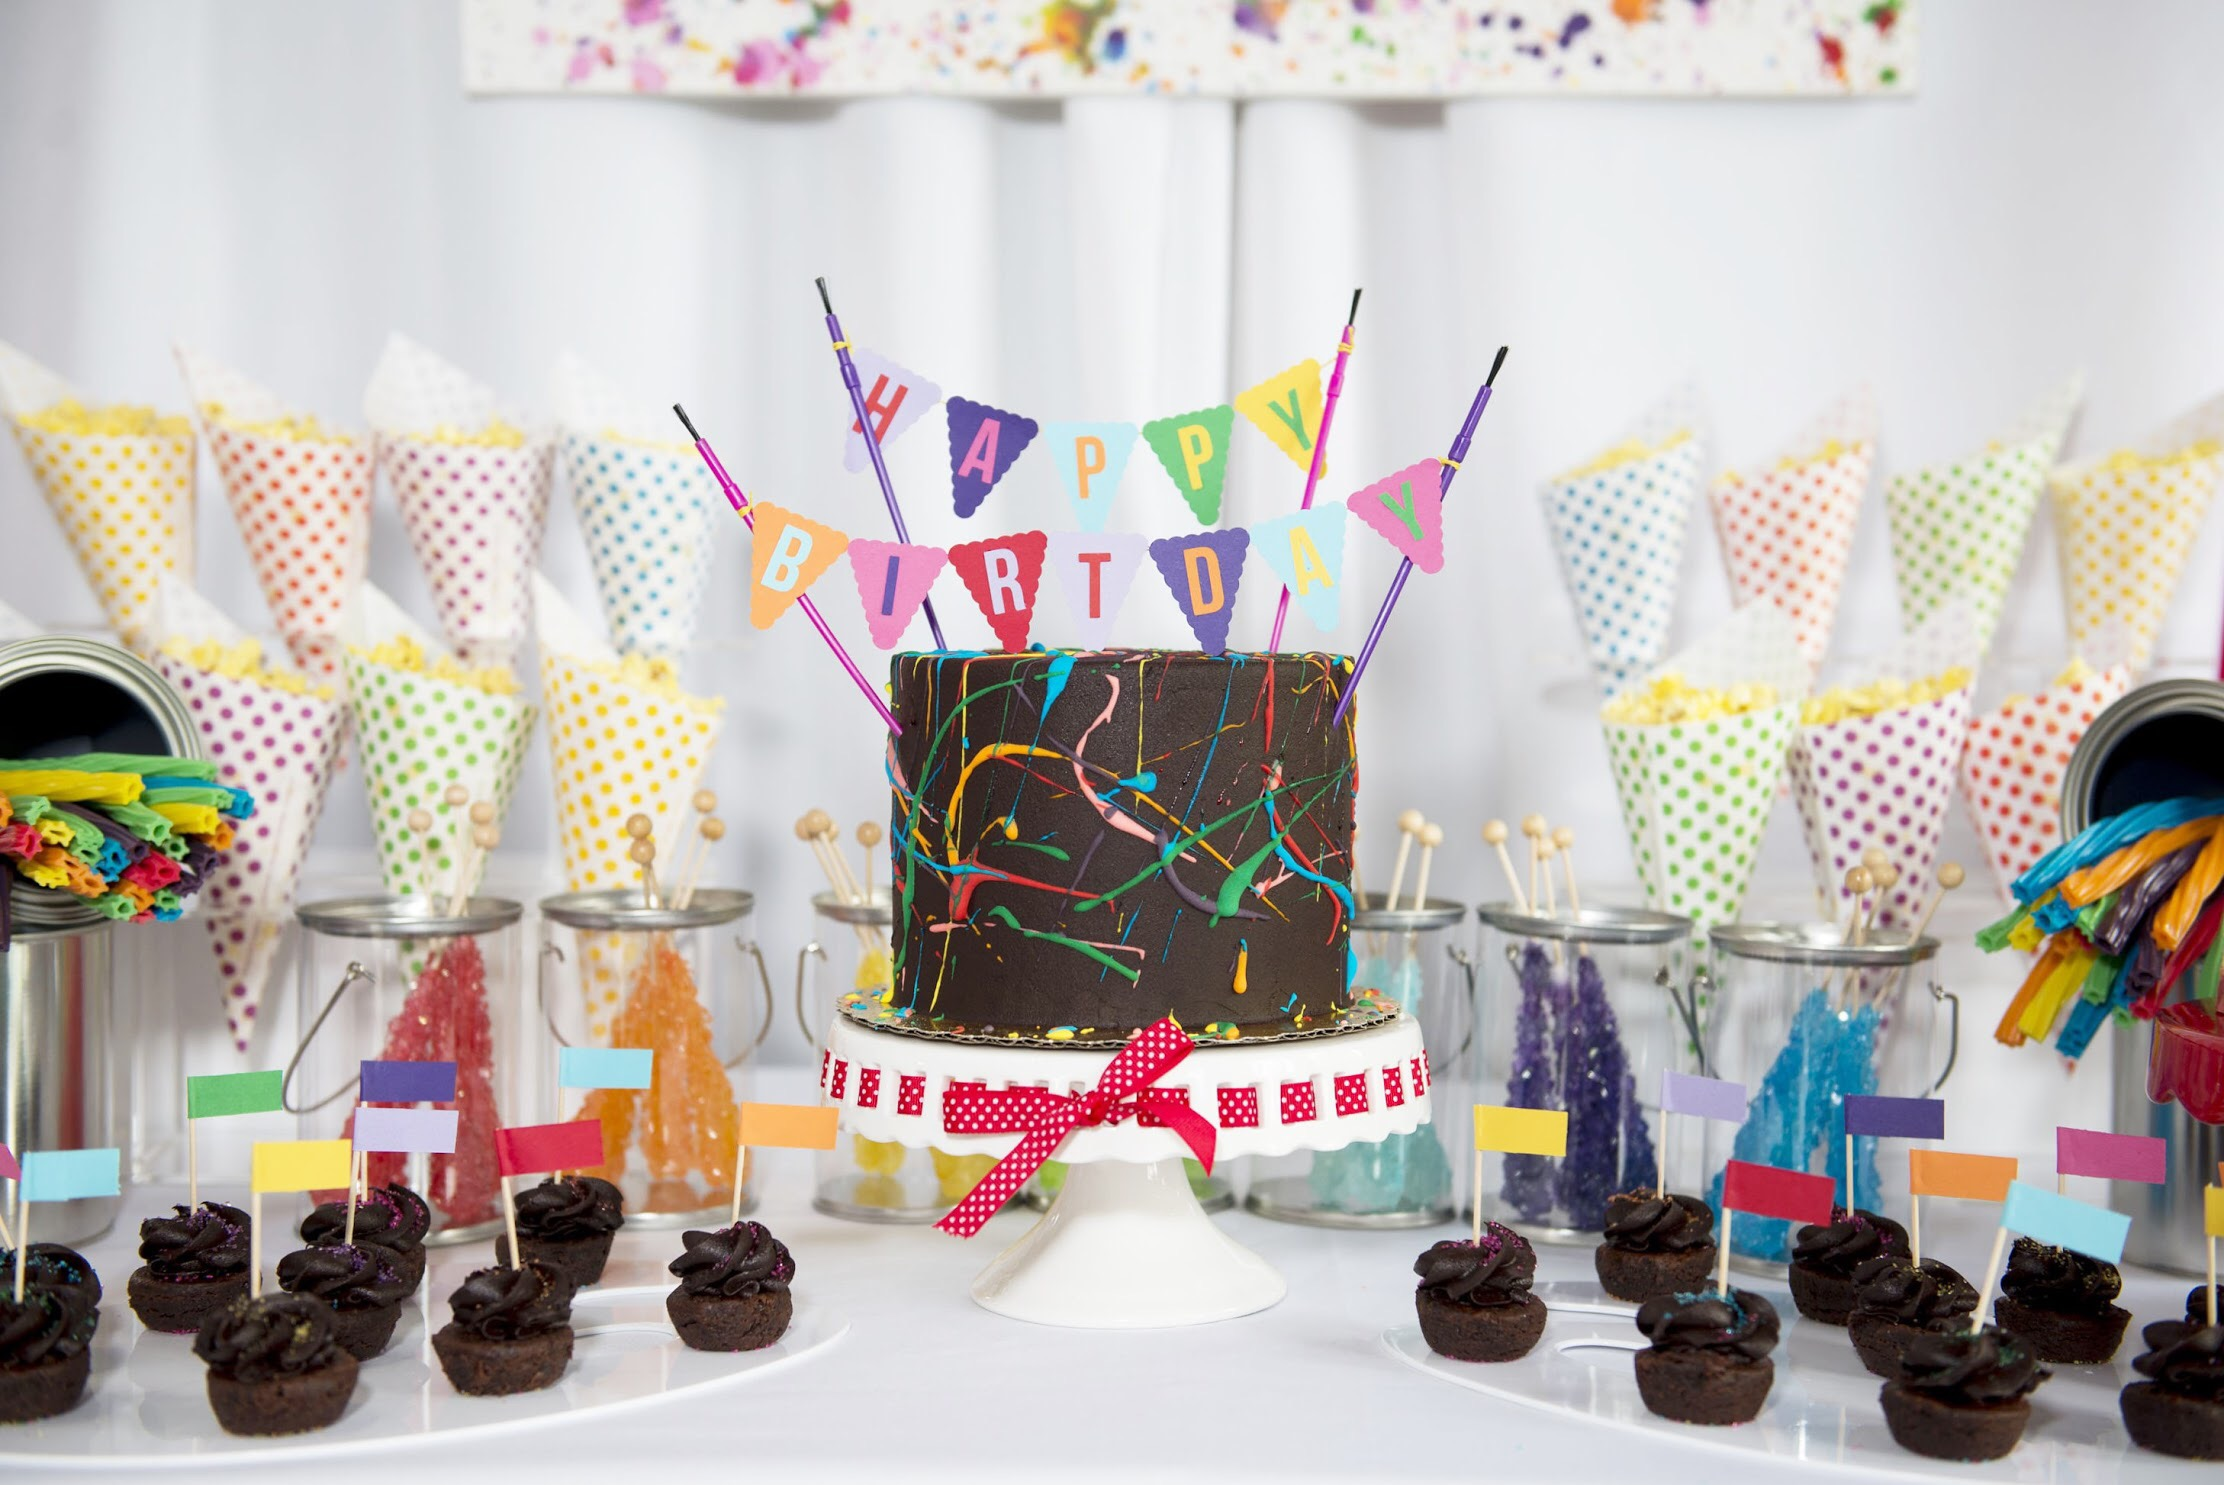 Art Themed Birthday Party Desserts: Chocolate brownie cake with mini brownie bites. See all the details on how to plan your art party at a local art studio on Mint Event Design www.minteventdesign.com #kidsparty #kidspartyideas #birthdaypartyideas #artparty #rainbowparty #birthdaycake #partydessert